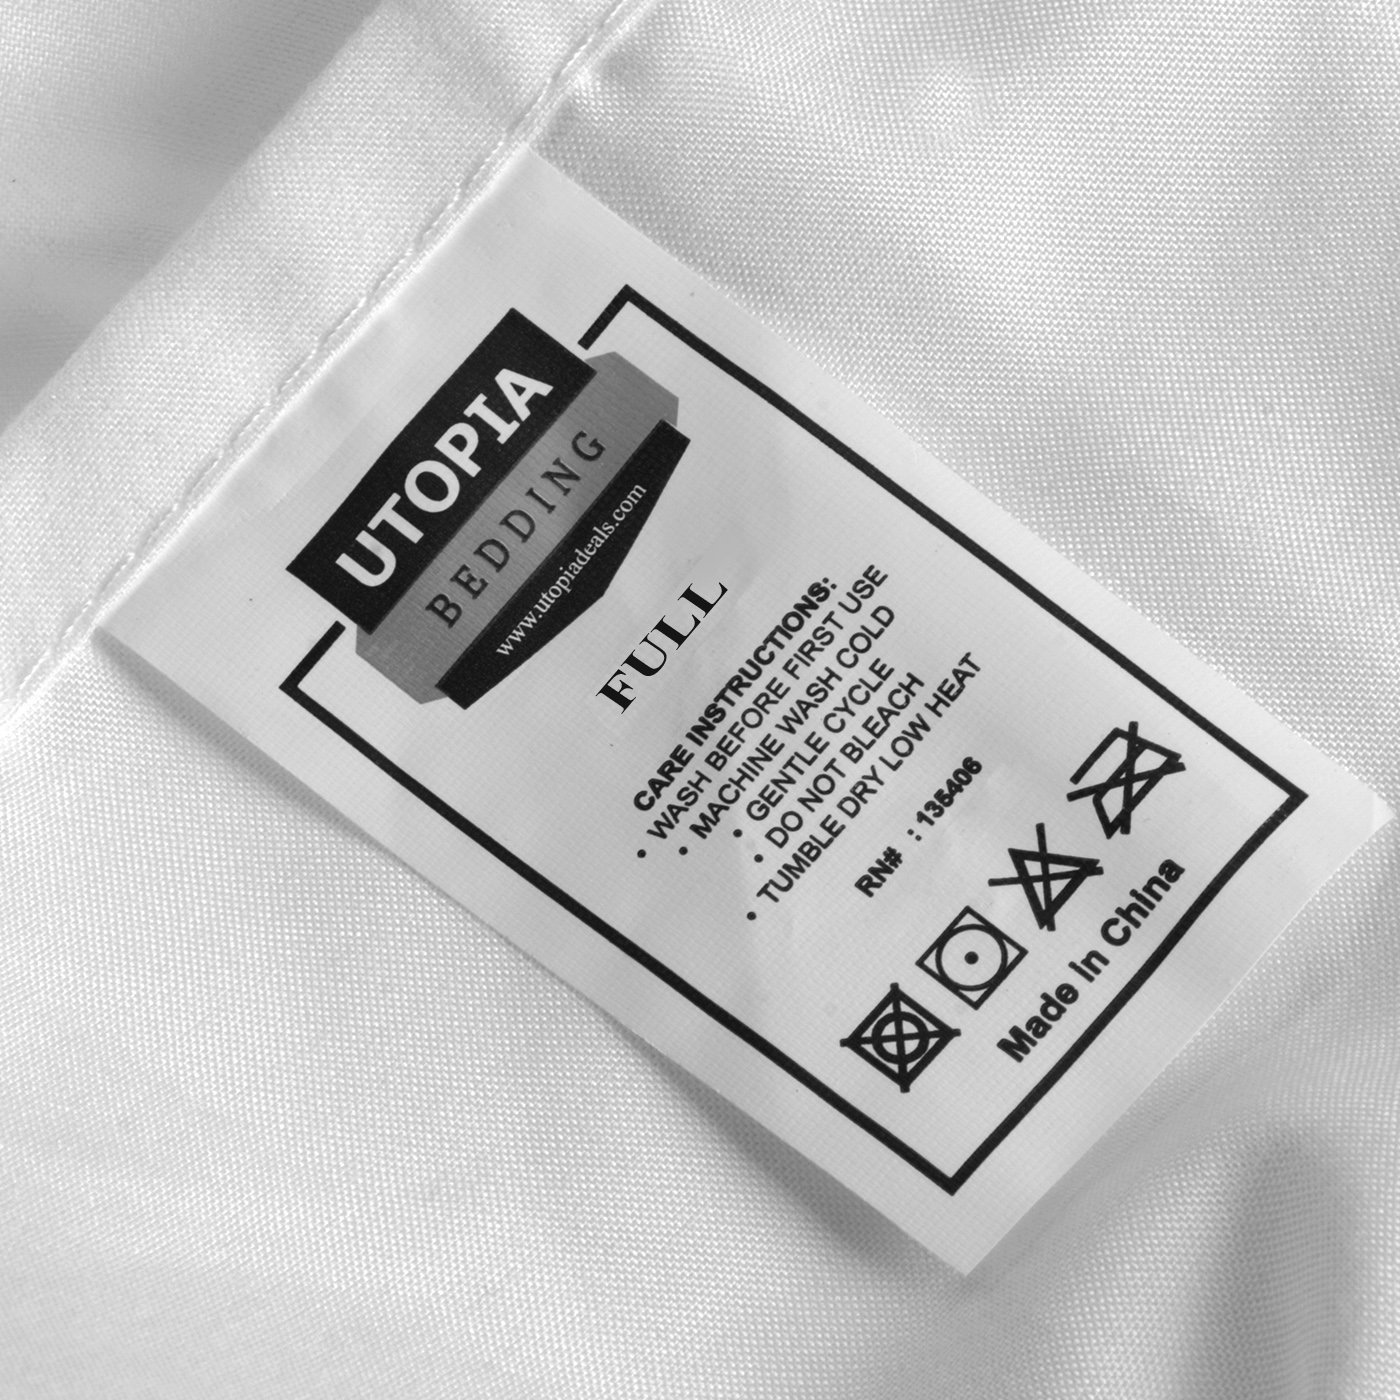 Utopia Bedding Fitted Sheet (Pack of 6, Full, White) Deep Pocket Brushed Microfiber, Breathable, Soft and Comfortable - Wrinkle, Fade, Stain and Abrasion Resistant - Hotel Quality - Durable